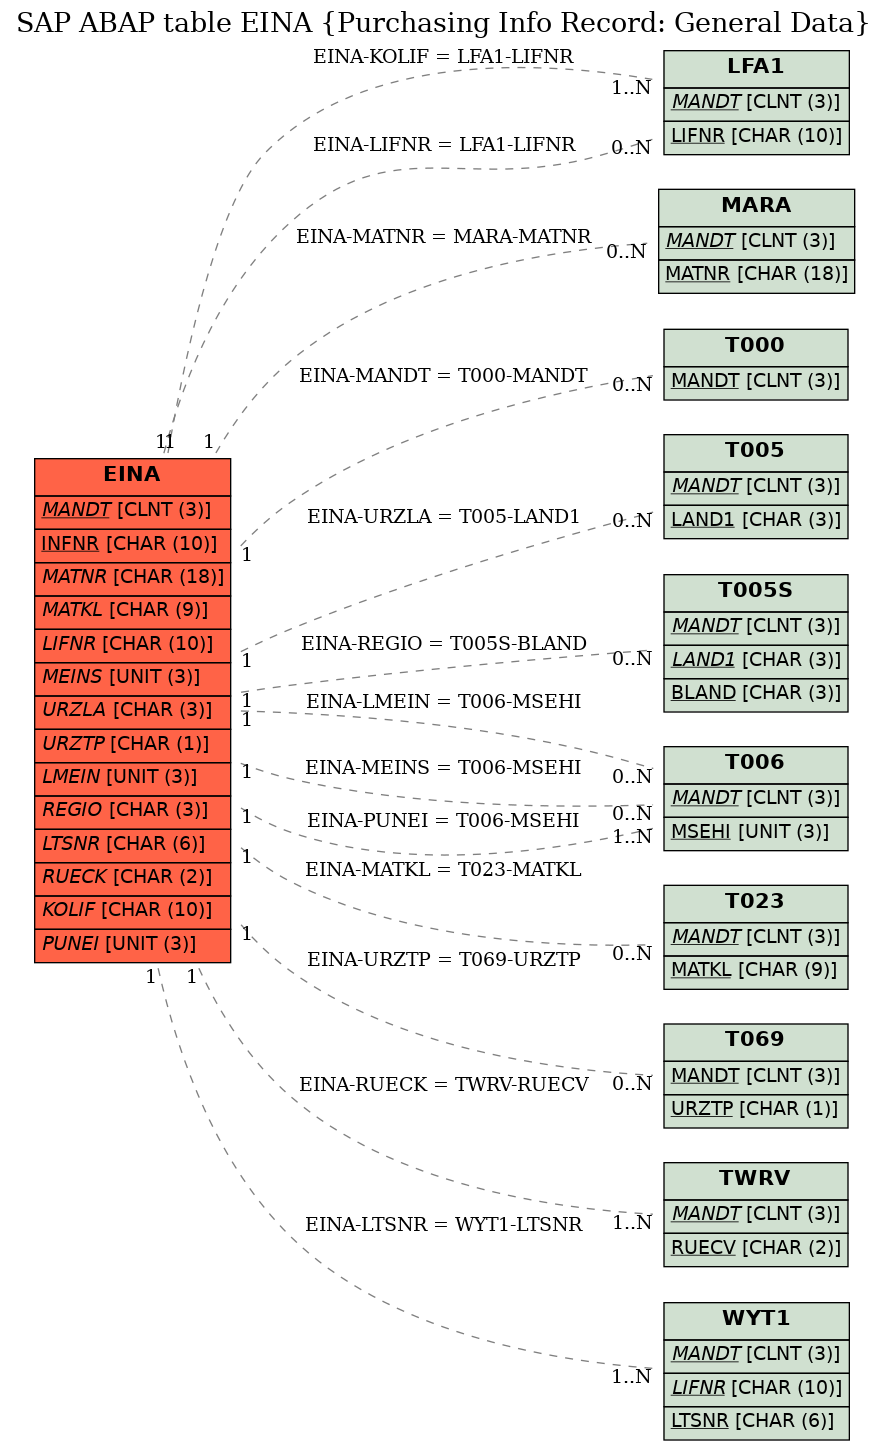 E-R Diagram for table EINA (Purchasing Info Record: General Data)